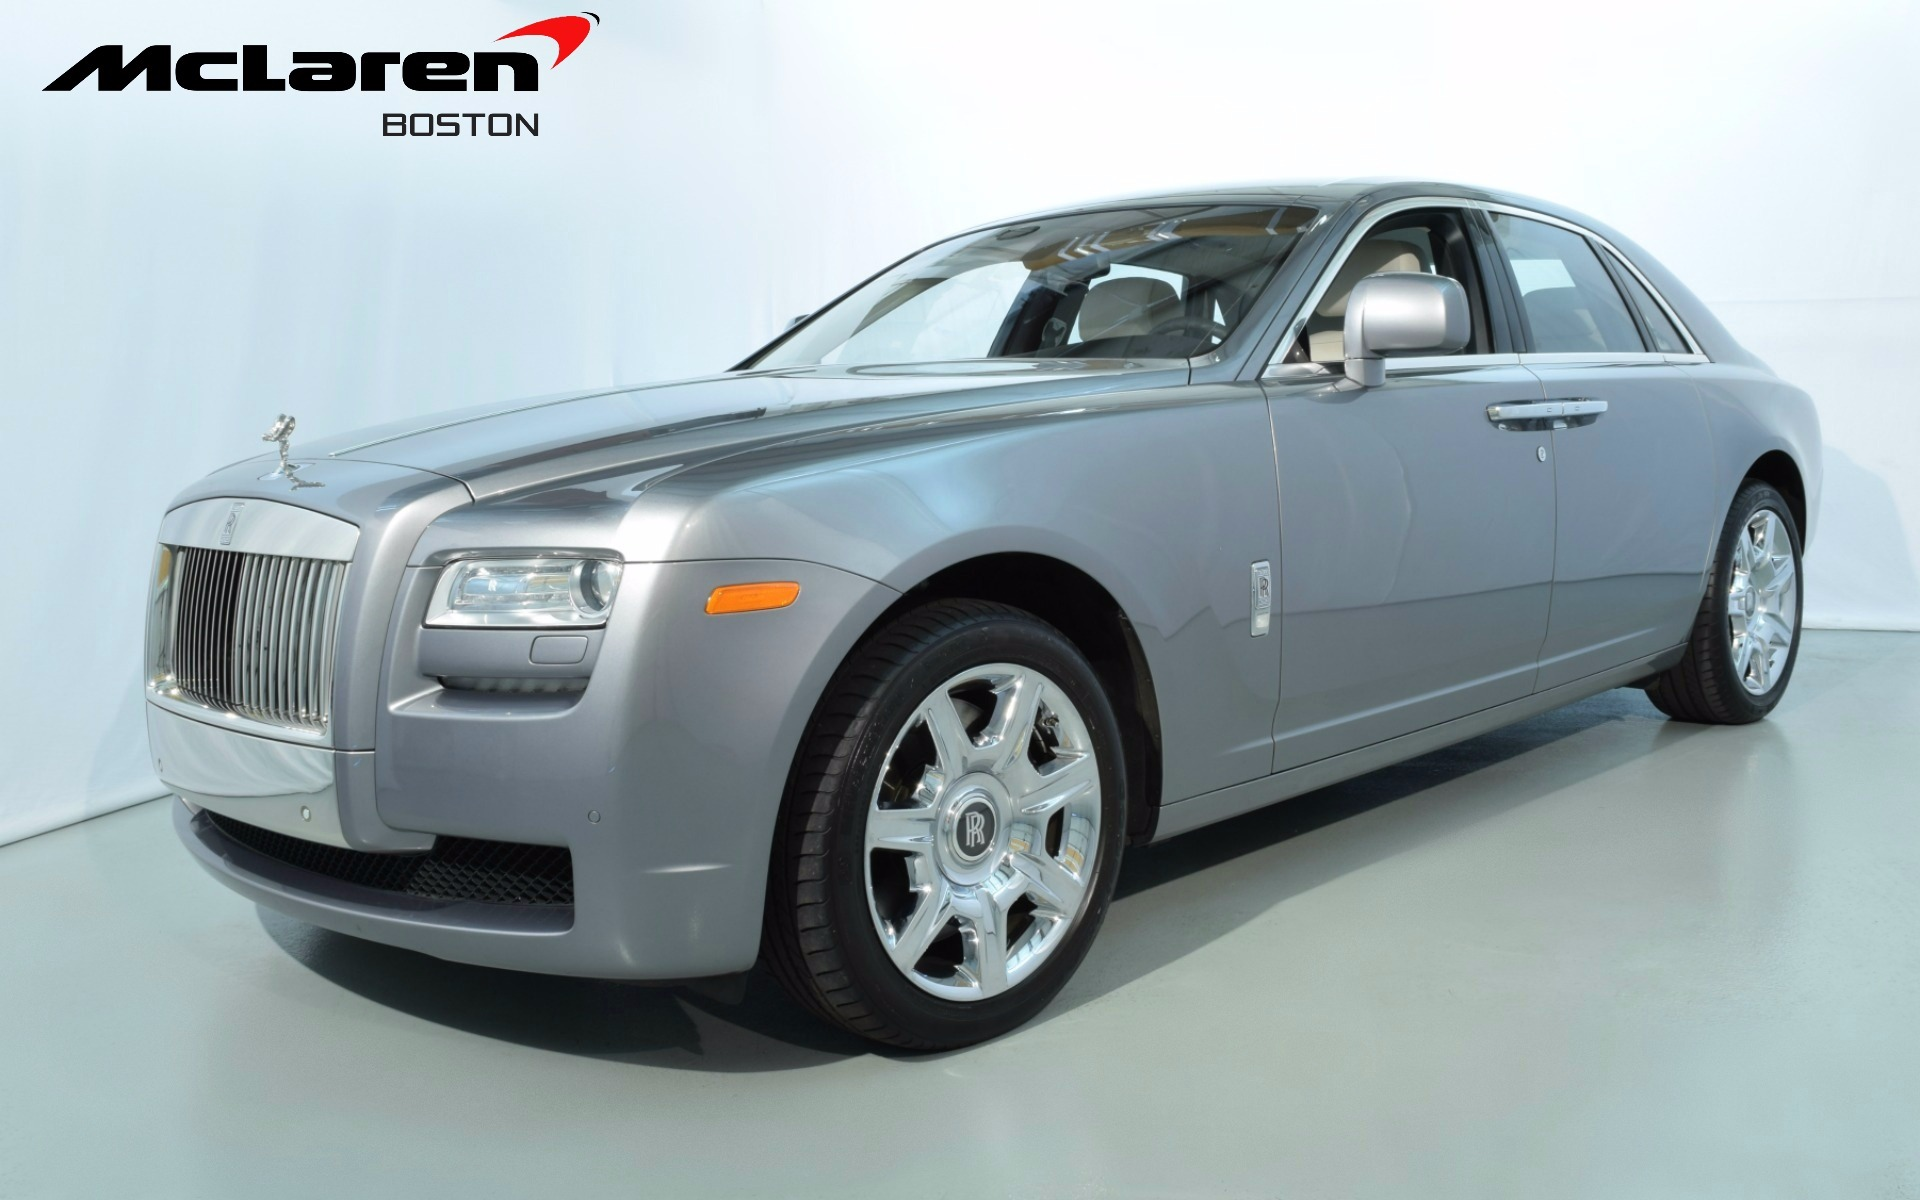 How To Calculate Apr On A Loan >> 2010 Rolls-Royce Ghost For Sale in Norwell, MA X48916 | Mclaren Boston